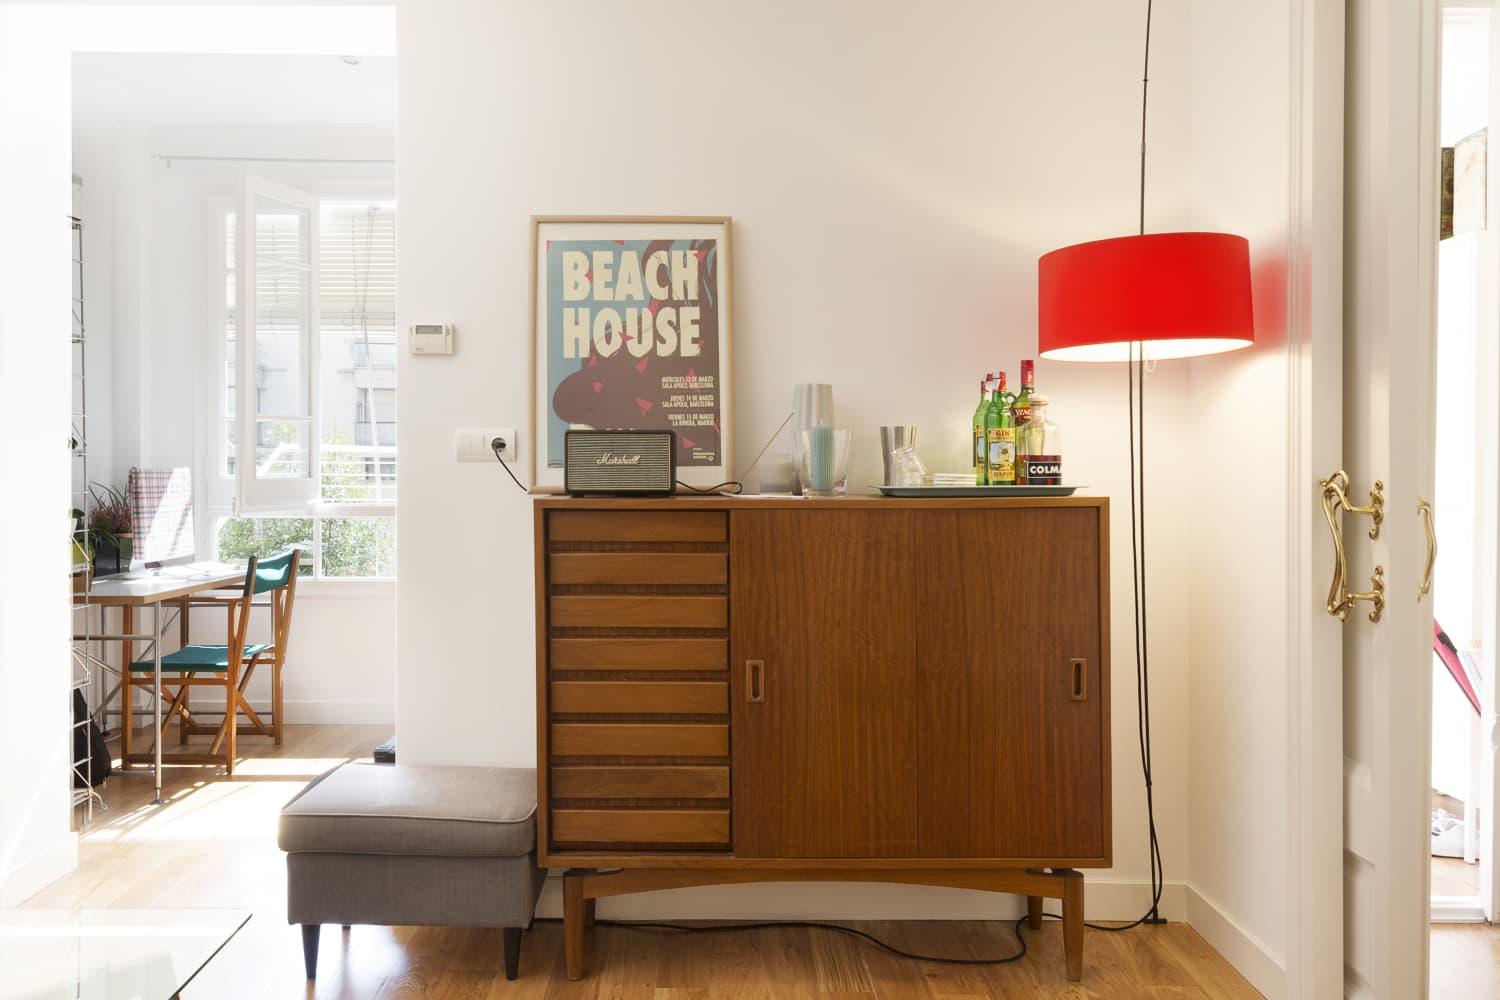 Everything You Need to Make Your Furniture Last Forever, According to the Pros